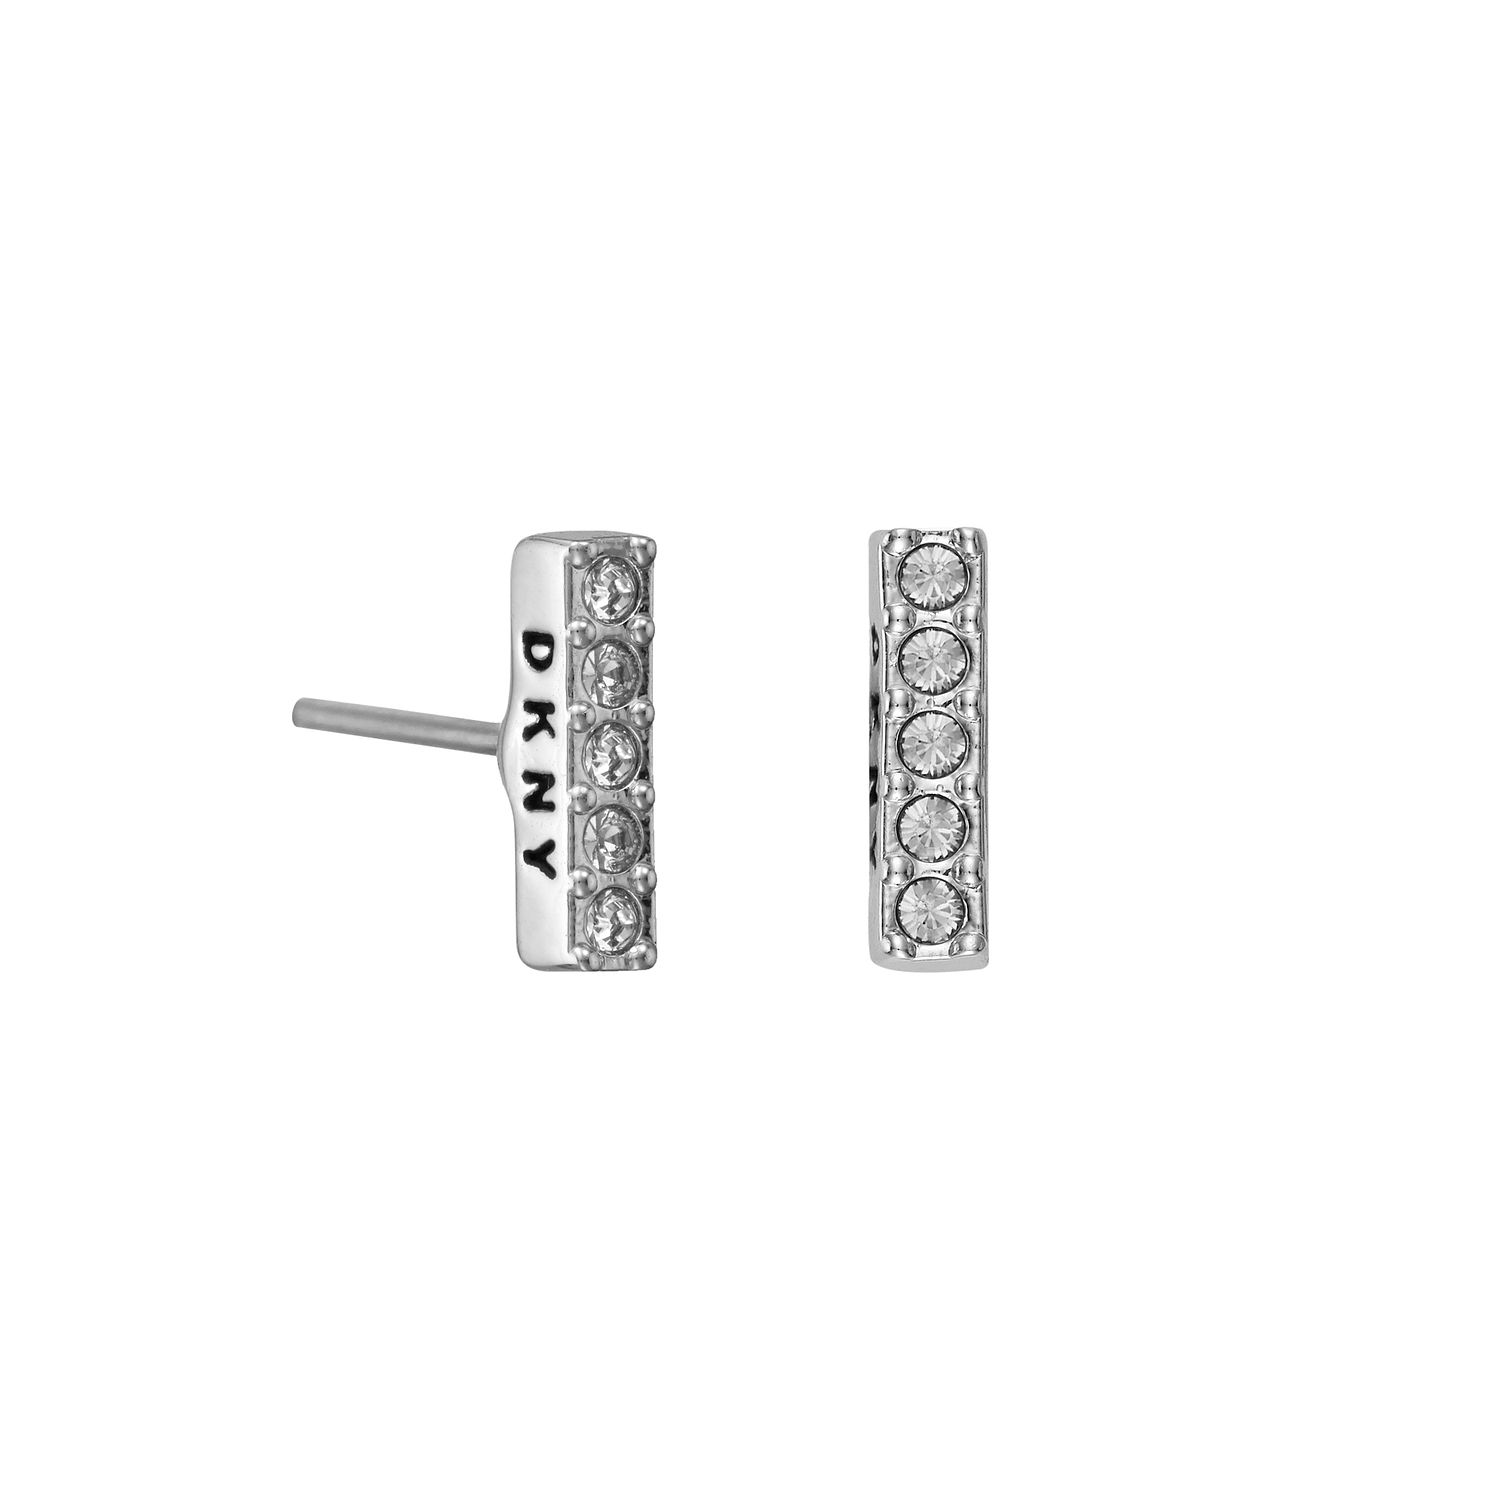 DKNY Thick Pave Bar Rhodium Plated Crystal Stud Earrings - Product number 5888387